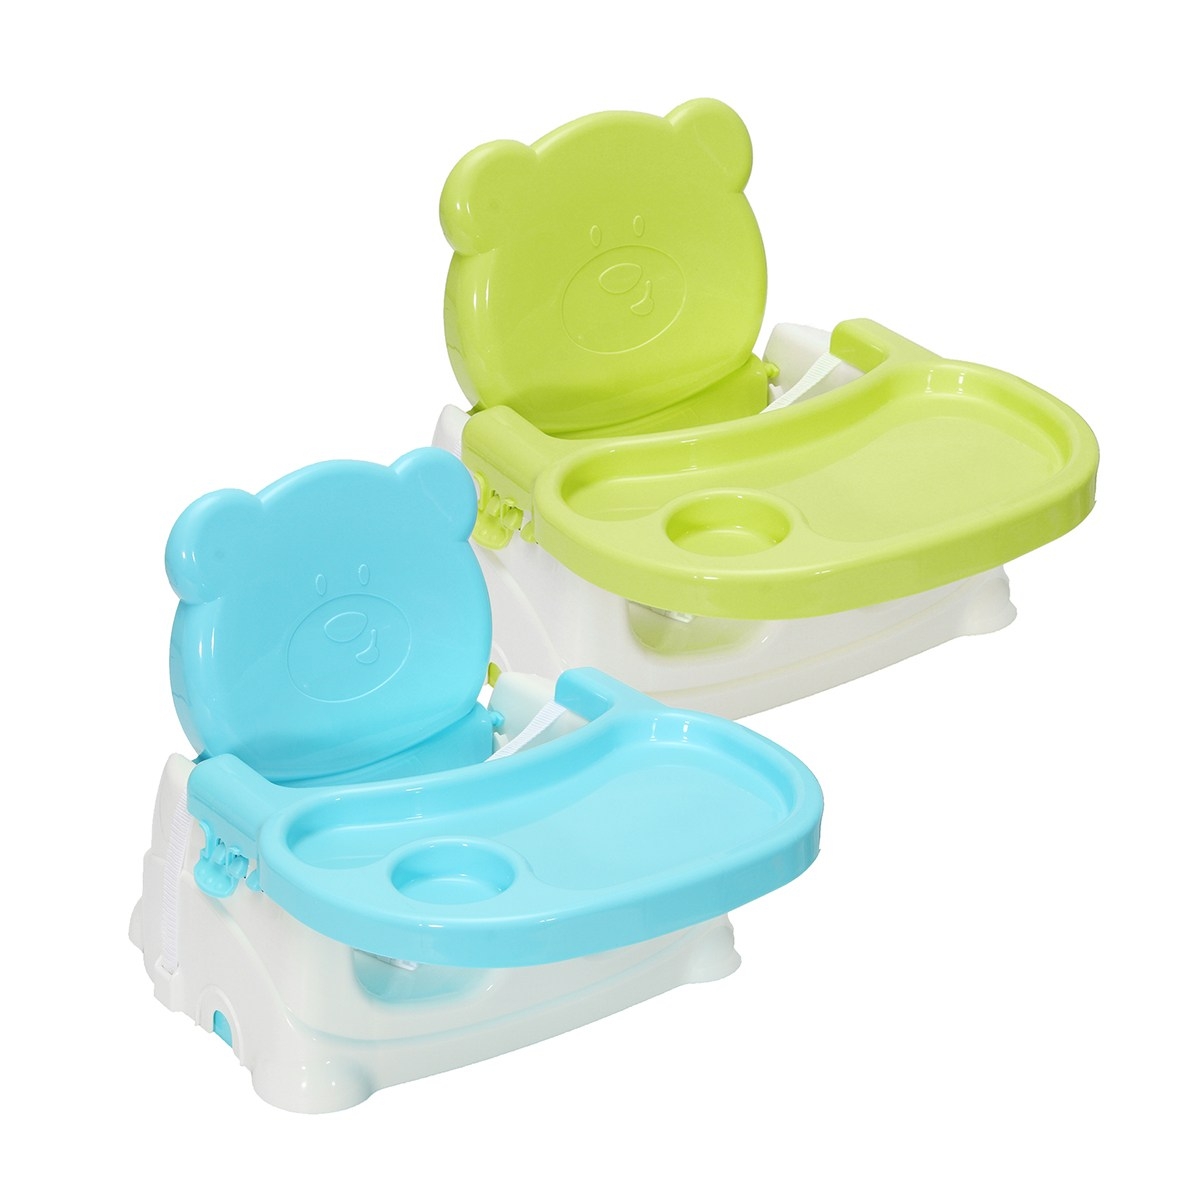 baby high chair baby highchair portable feeding chair portable folding kids table and chair children child eating dinning feed amarpreet kaur karnail singh and m s pannu feeding and immunization affecting nutrition and morbidity